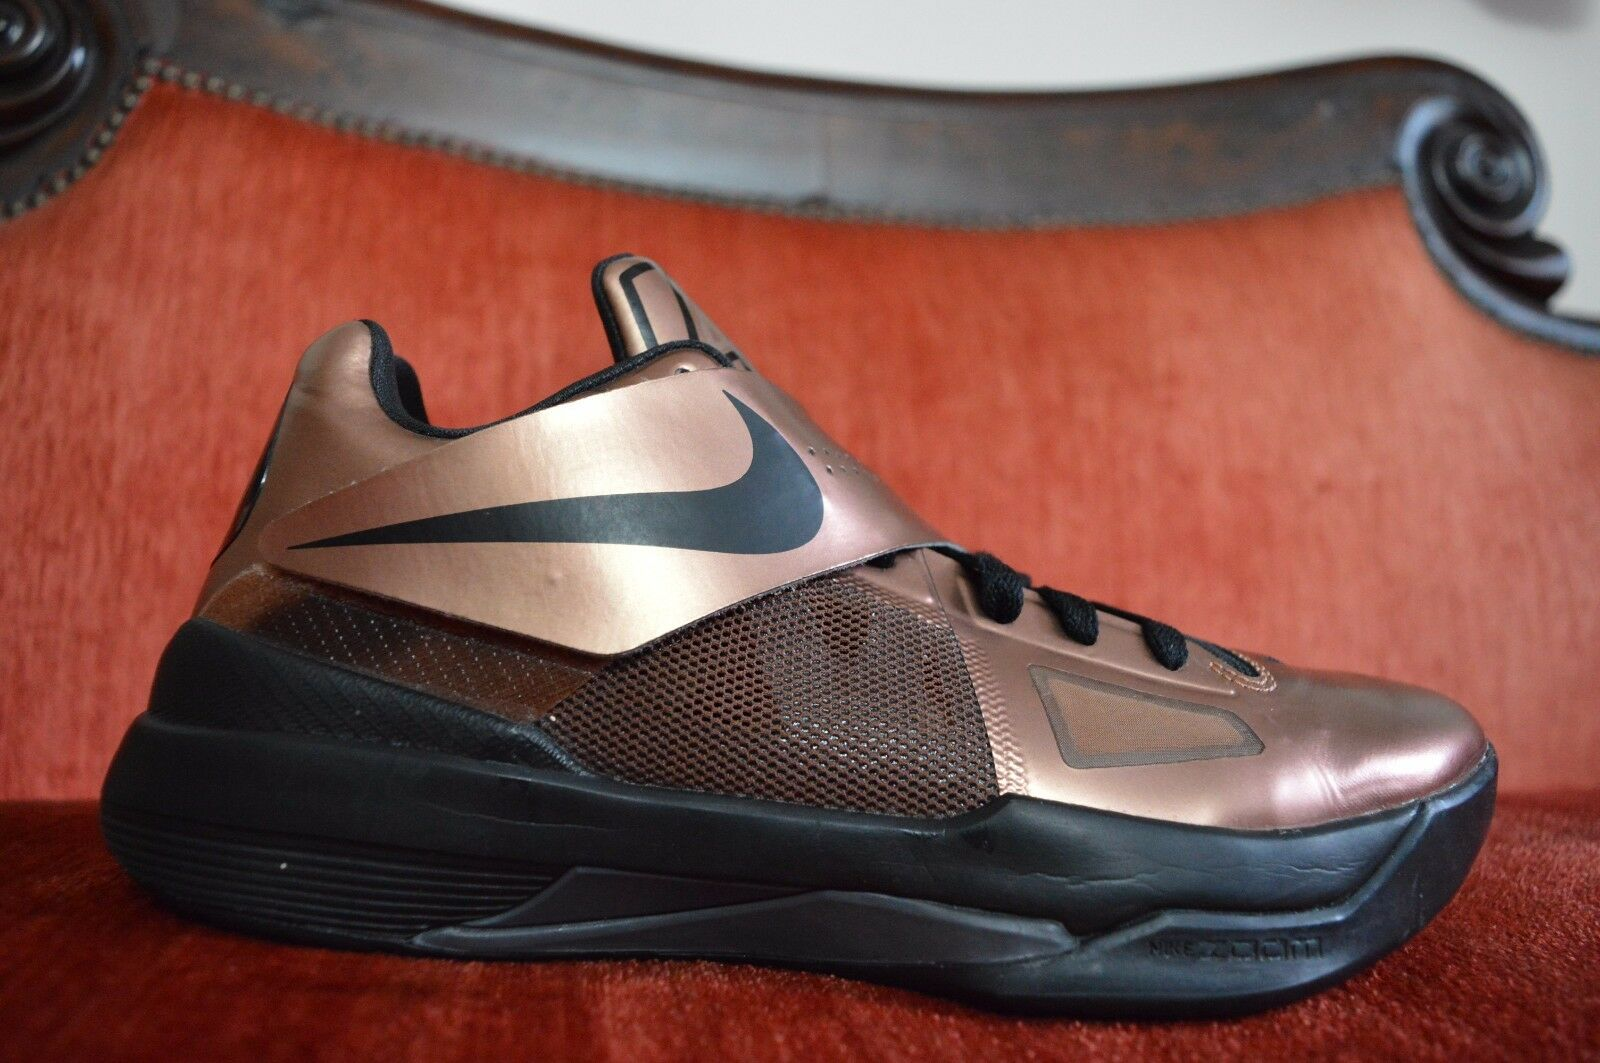 Nike Zoom KEVIN DURANT KD IV 4 CHRISTMAS BRONZE GOLD BLACK RED 473679-700 8.5 Cheap women's shoes women's shoes